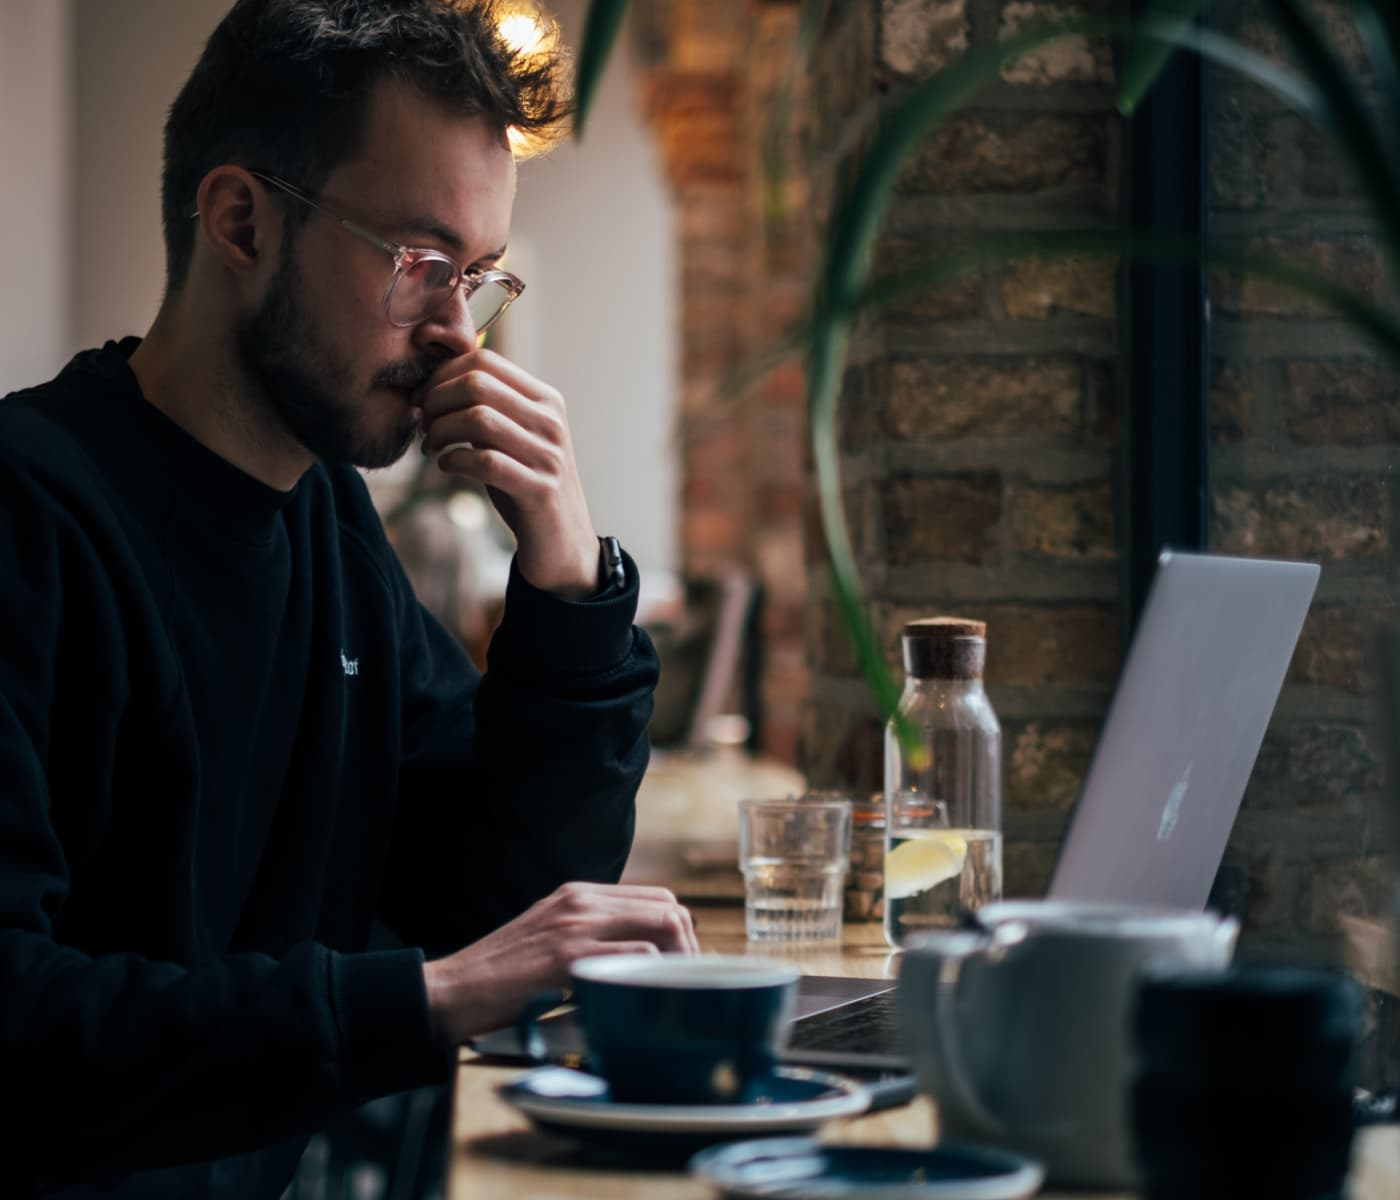 Image of man working in cafe